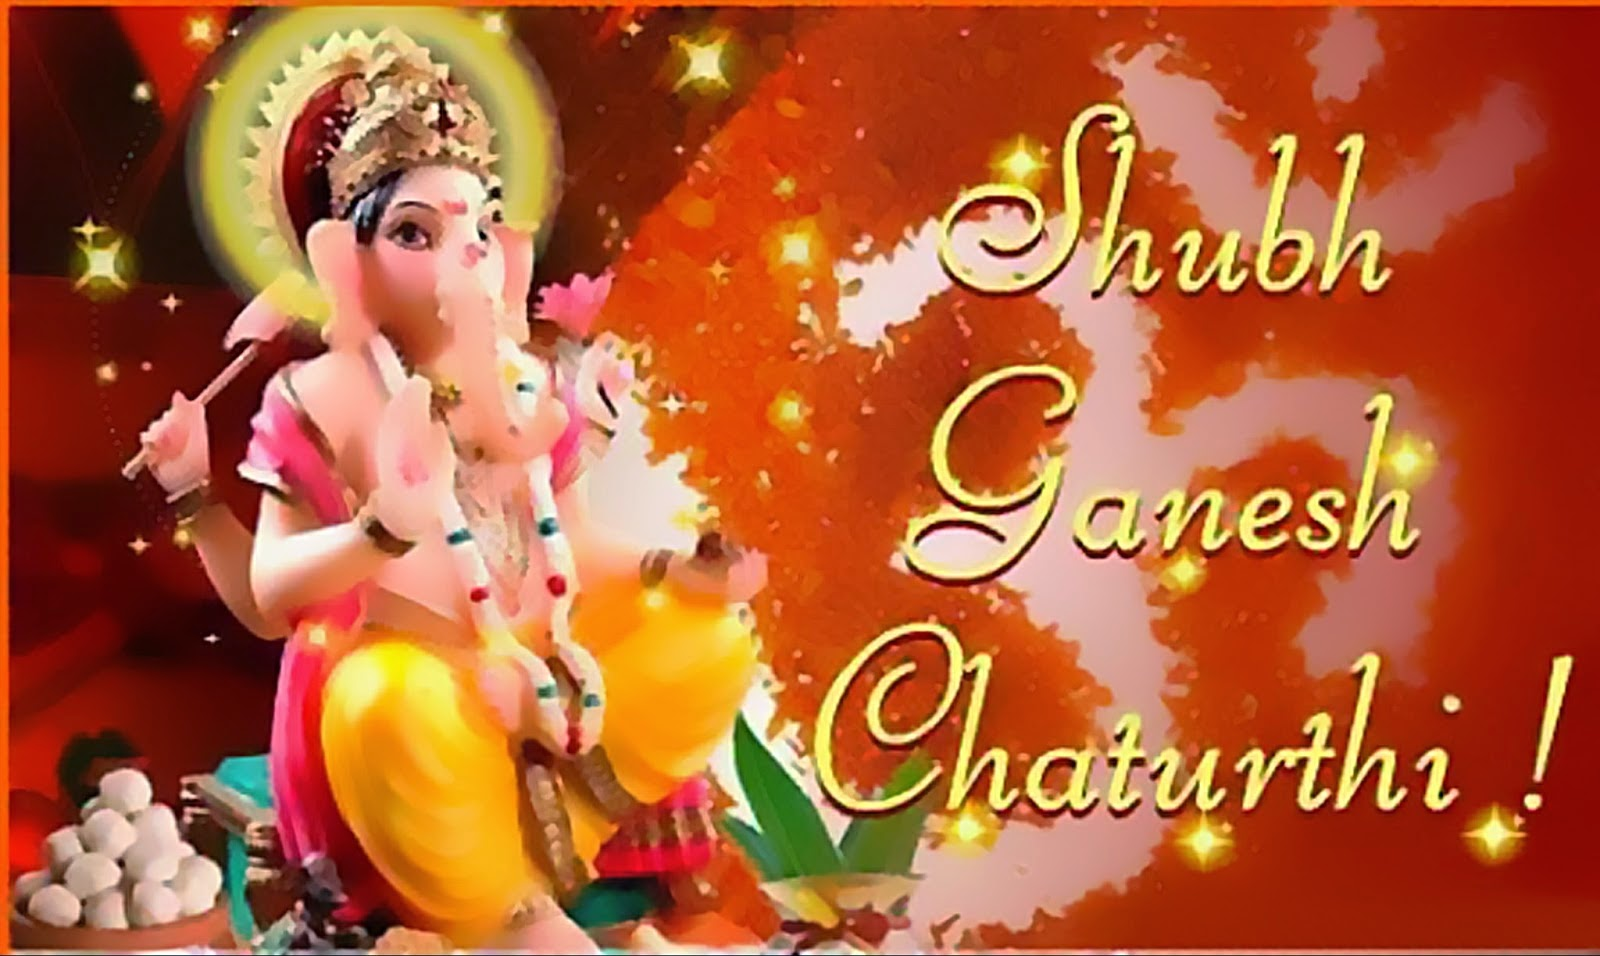 ganesh chaturthi Greetings Cards